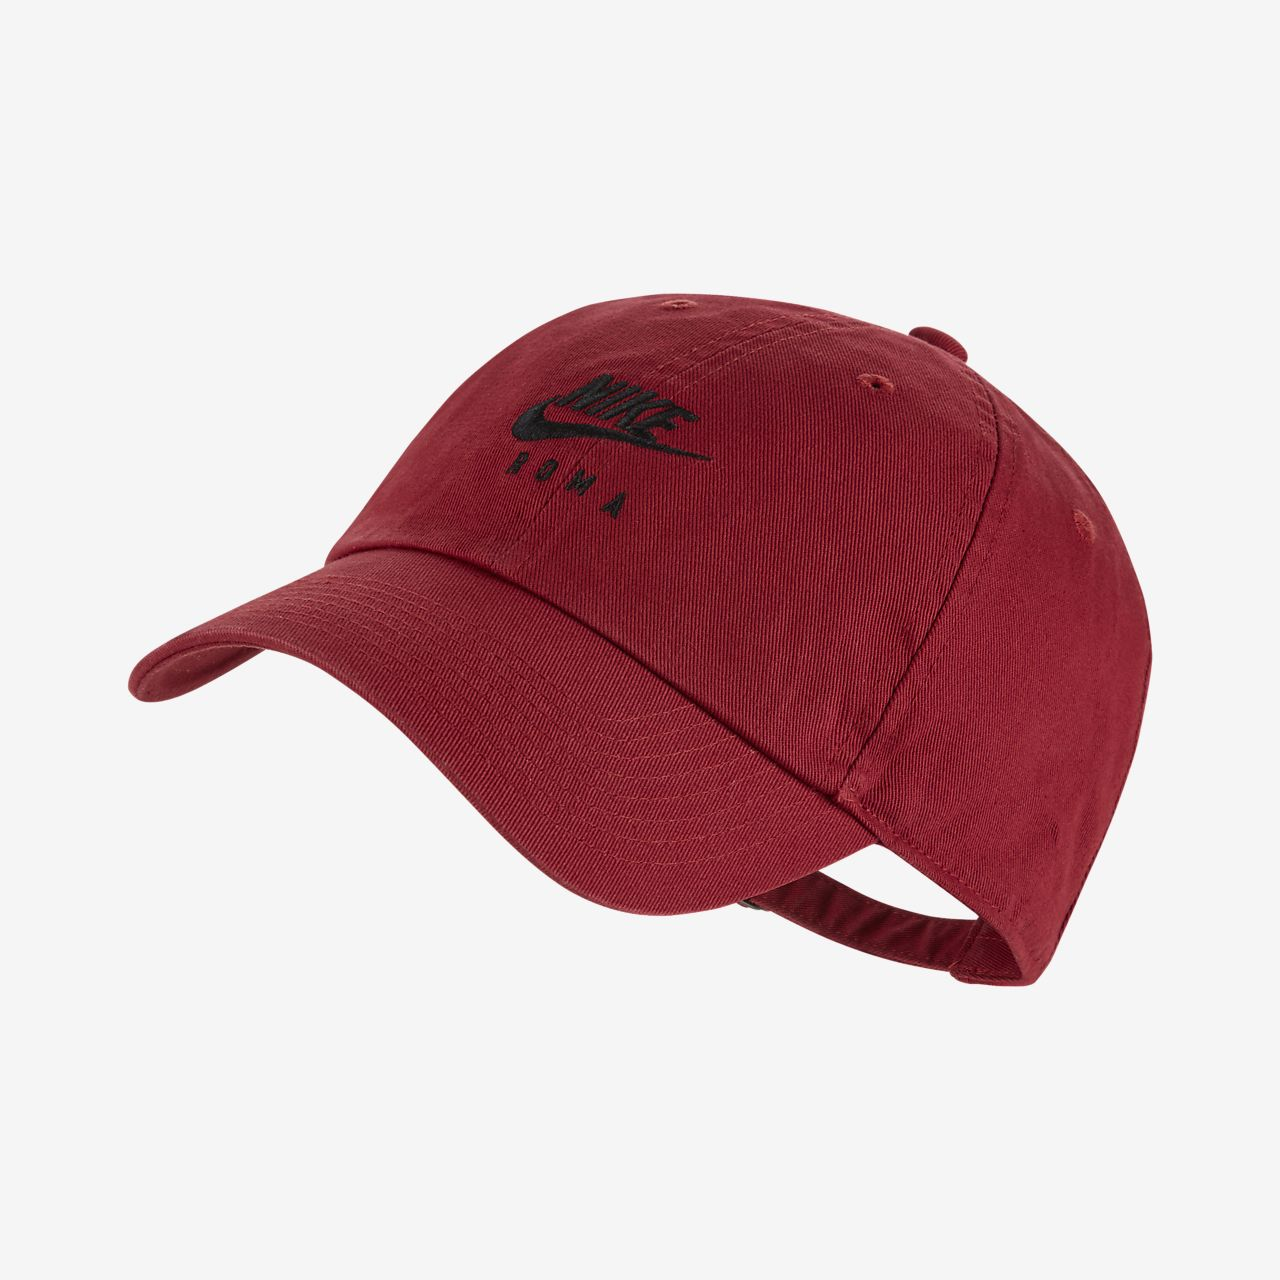 A.S. Roma Heritage86 Hat